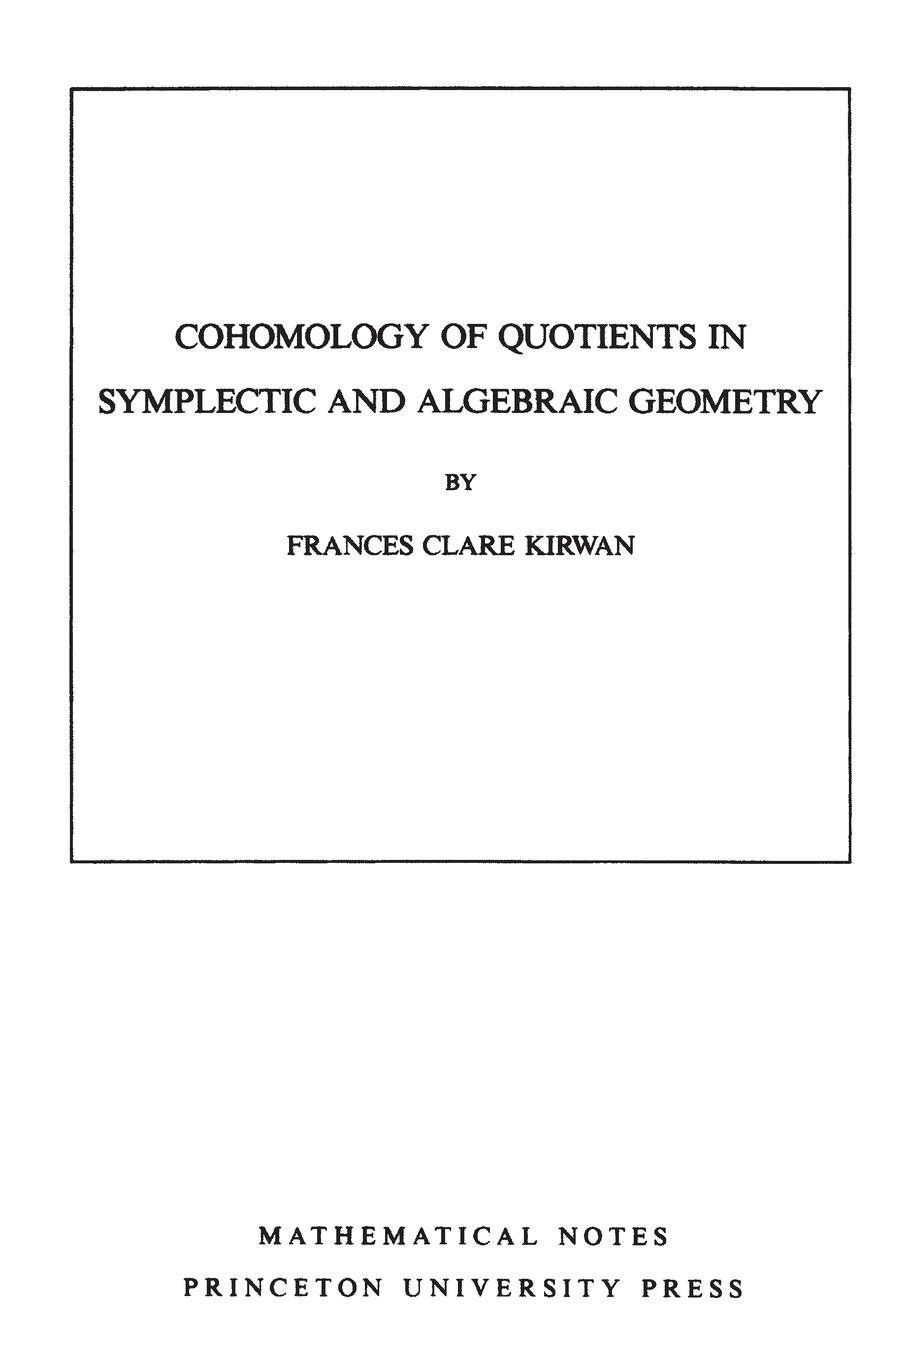 Frances Clare Kirwan Cohomology of Quotients in Symplectic and Algebraic Geometry. (MN-31), Volume 31 alfred north whitehead the axioms of projective geometry